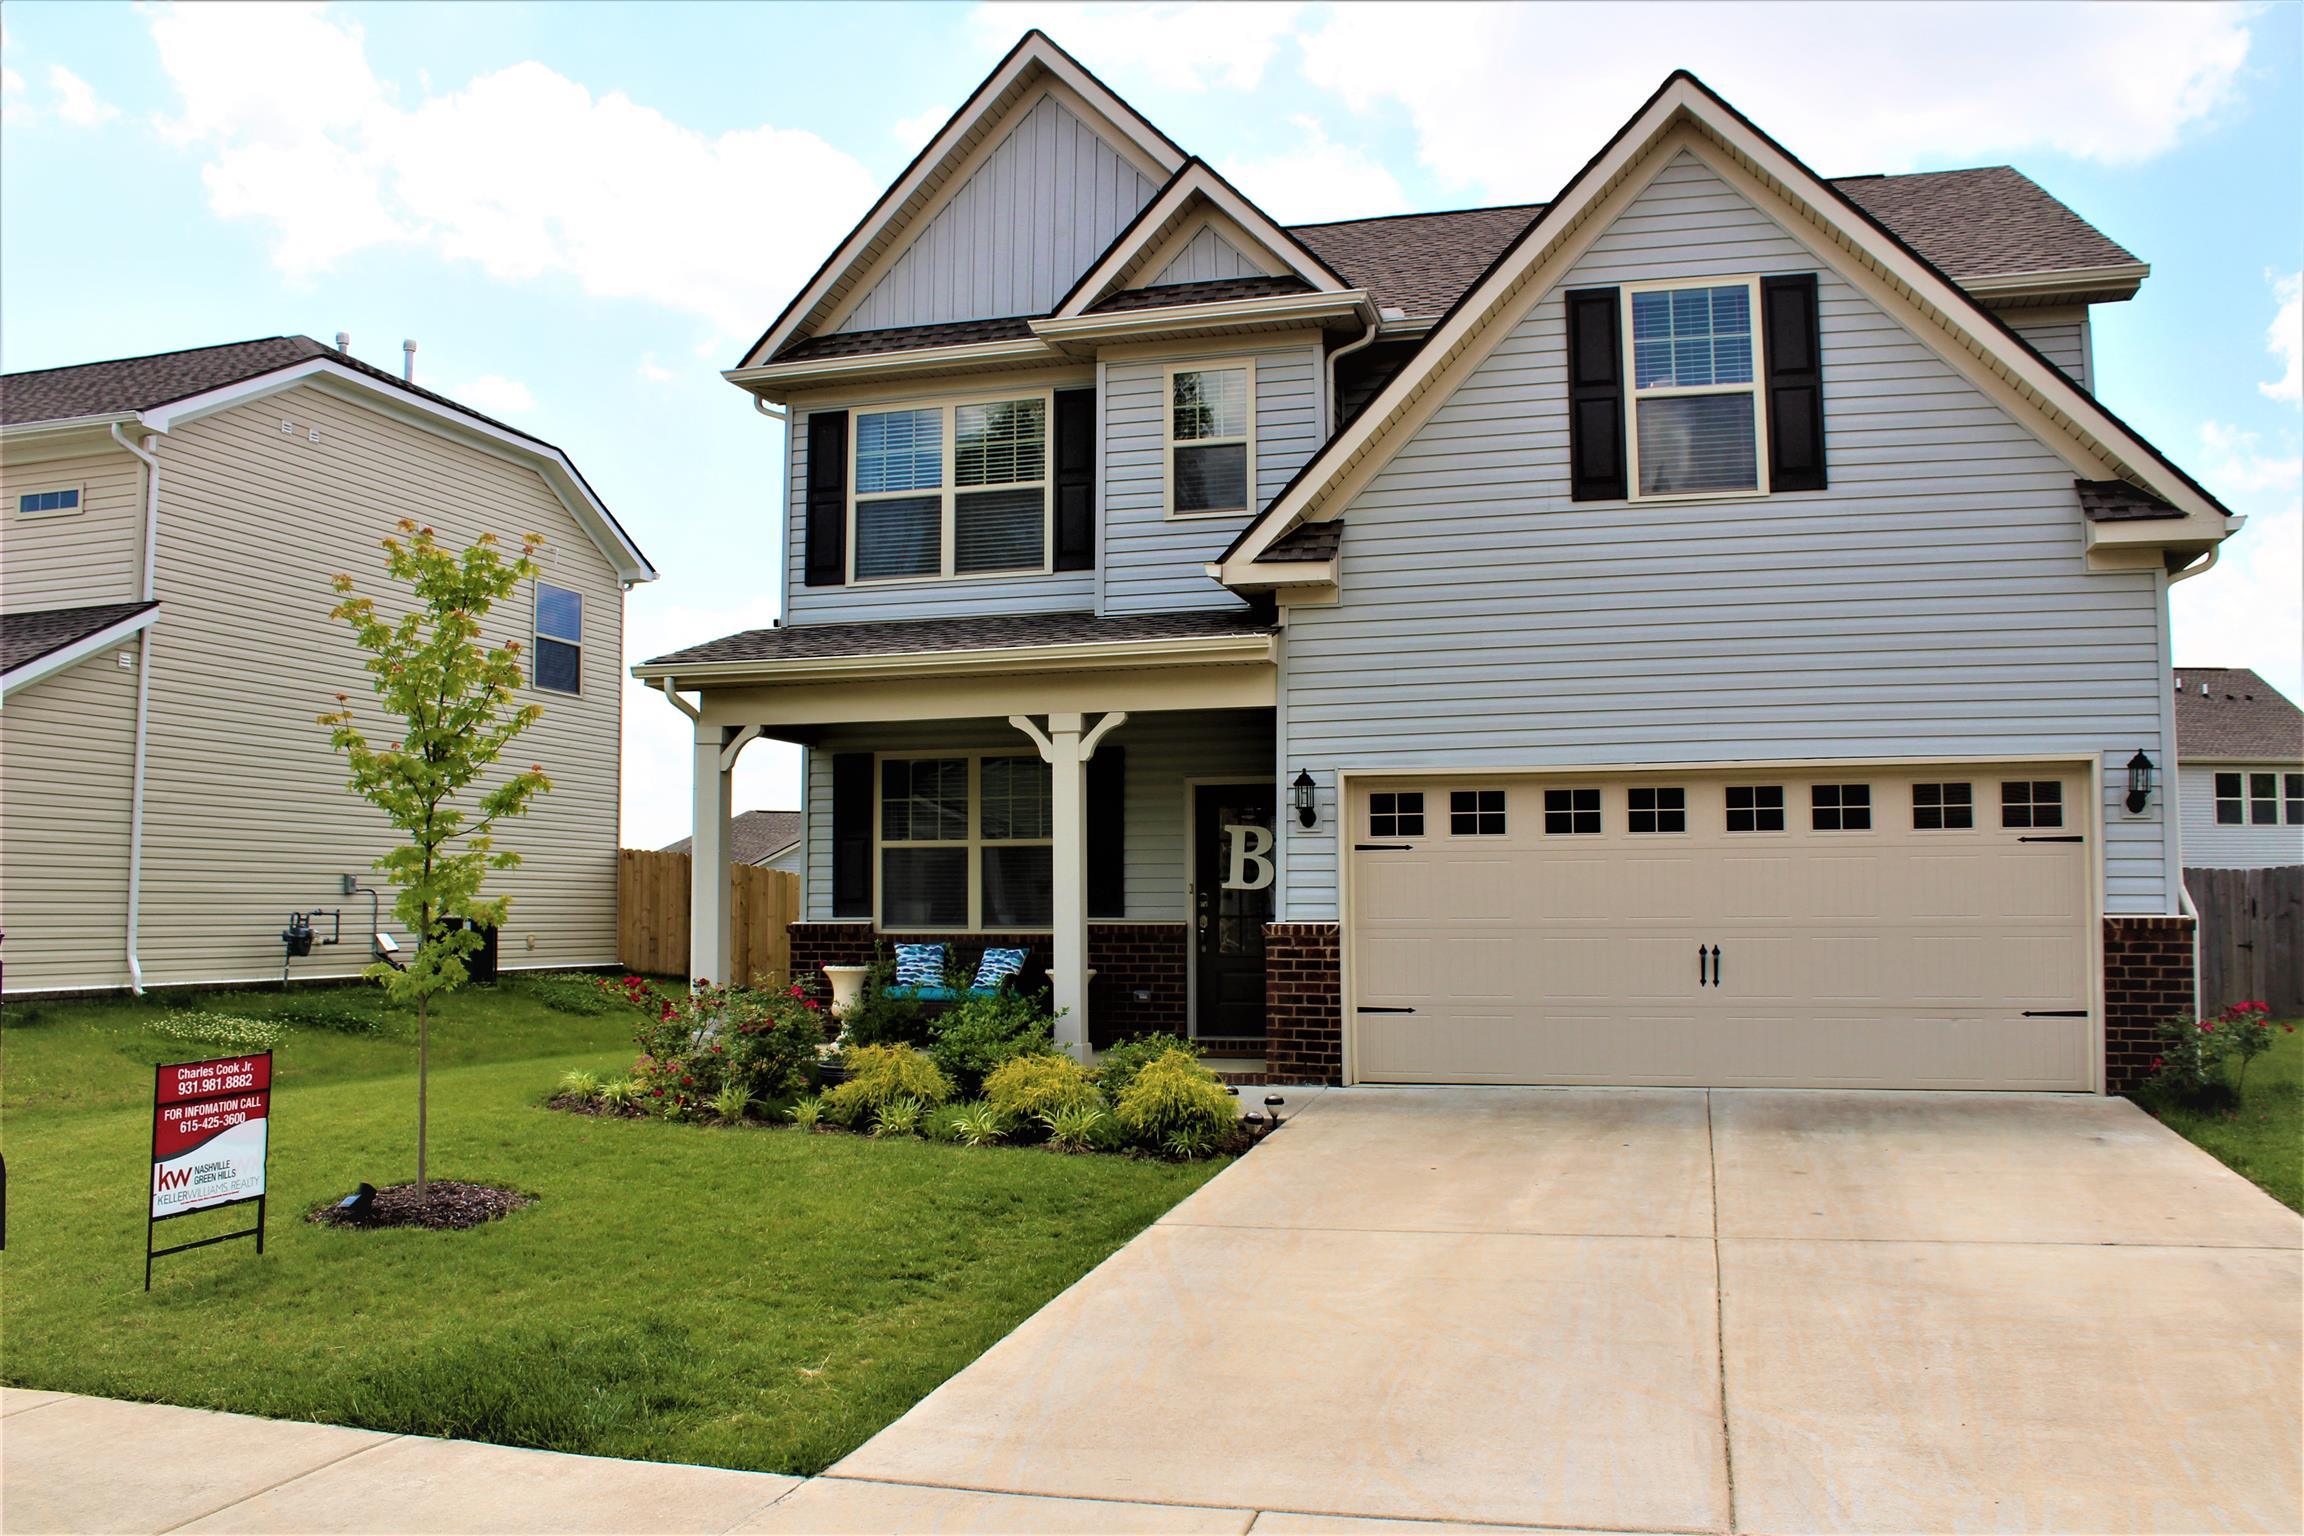 1039 Keeneland Dr, Spring Hill, Tennessee